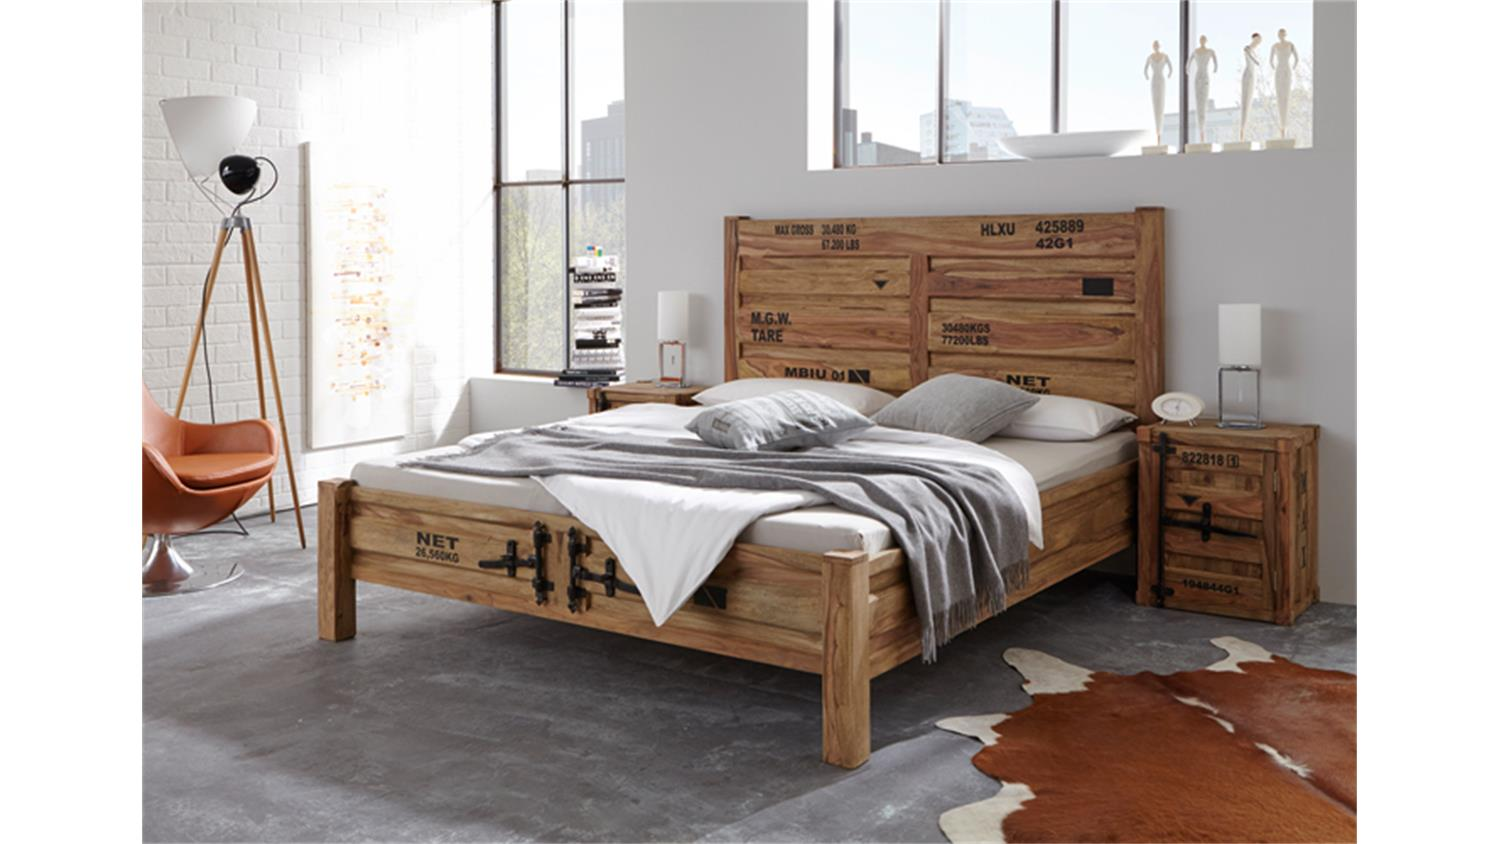 bett container 180x200 sheesham massiv von wolf m bel. Black Bedroom Furniture Sets. Home Design Ideas